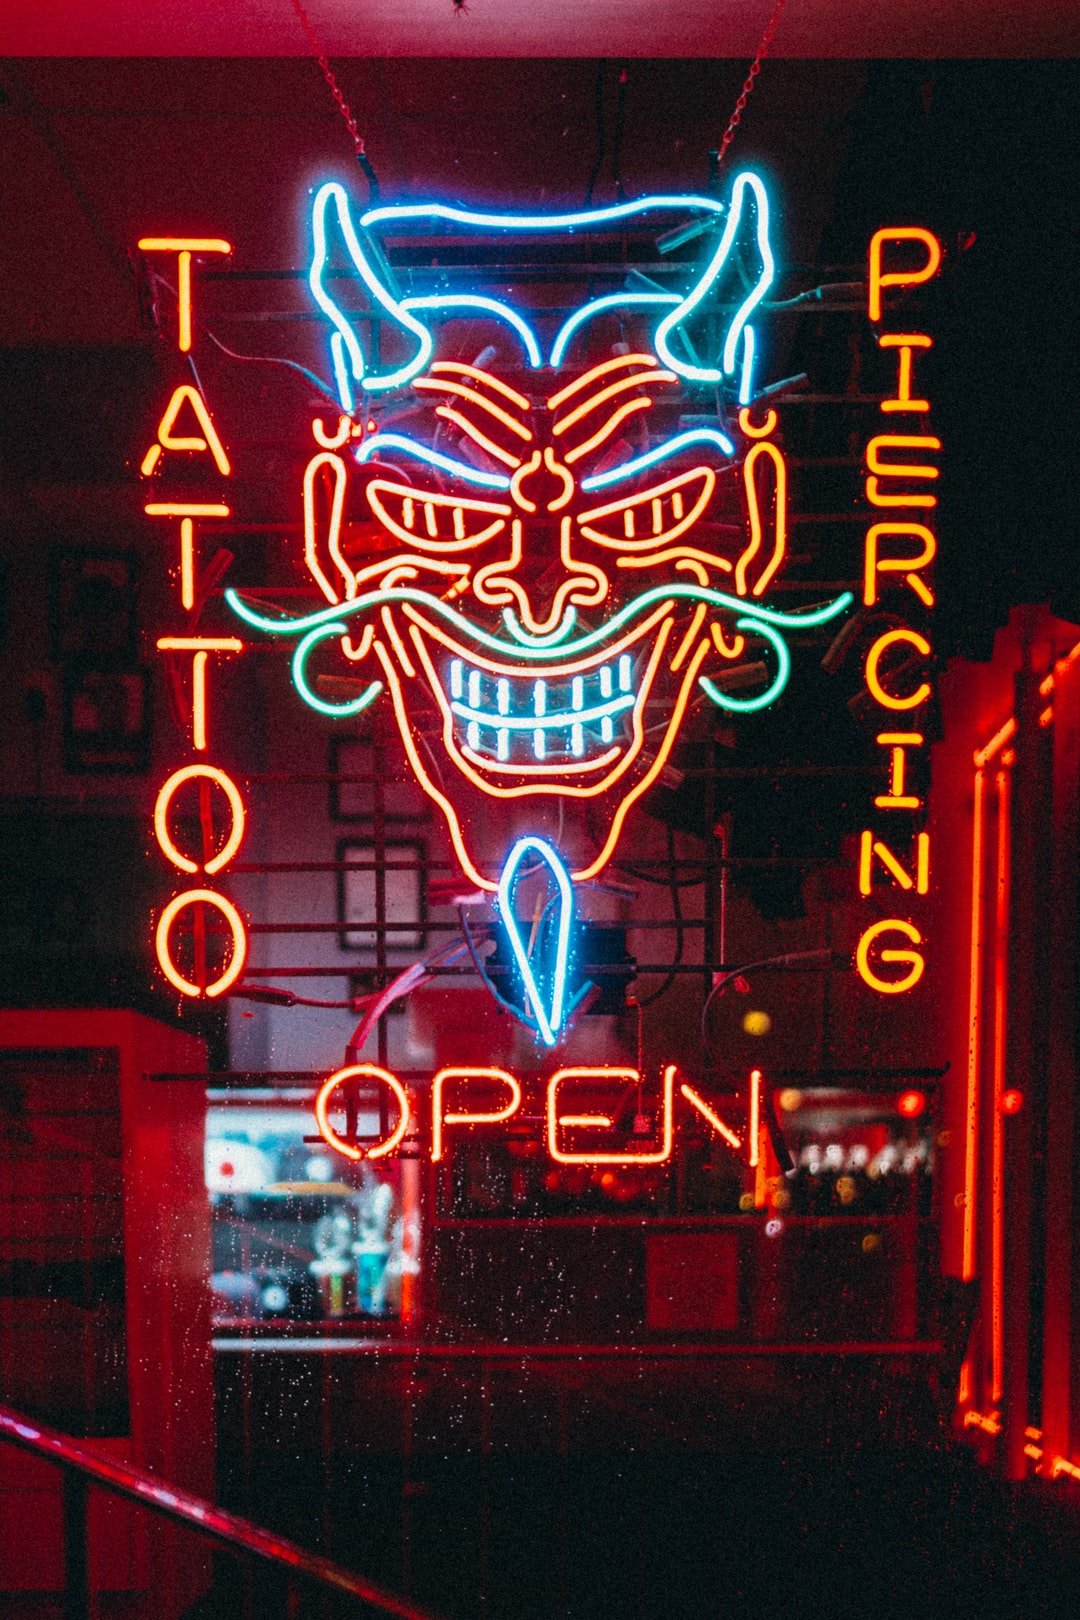 """""""Neon Demon"""" taken as I was driving to go to the grocery store (knowing it's less crowded at night). The rain had just started and this neon sign caught my eye. I couldn't pass up the inspiration so I pulled into the parking lot and snapped a quick picture."""